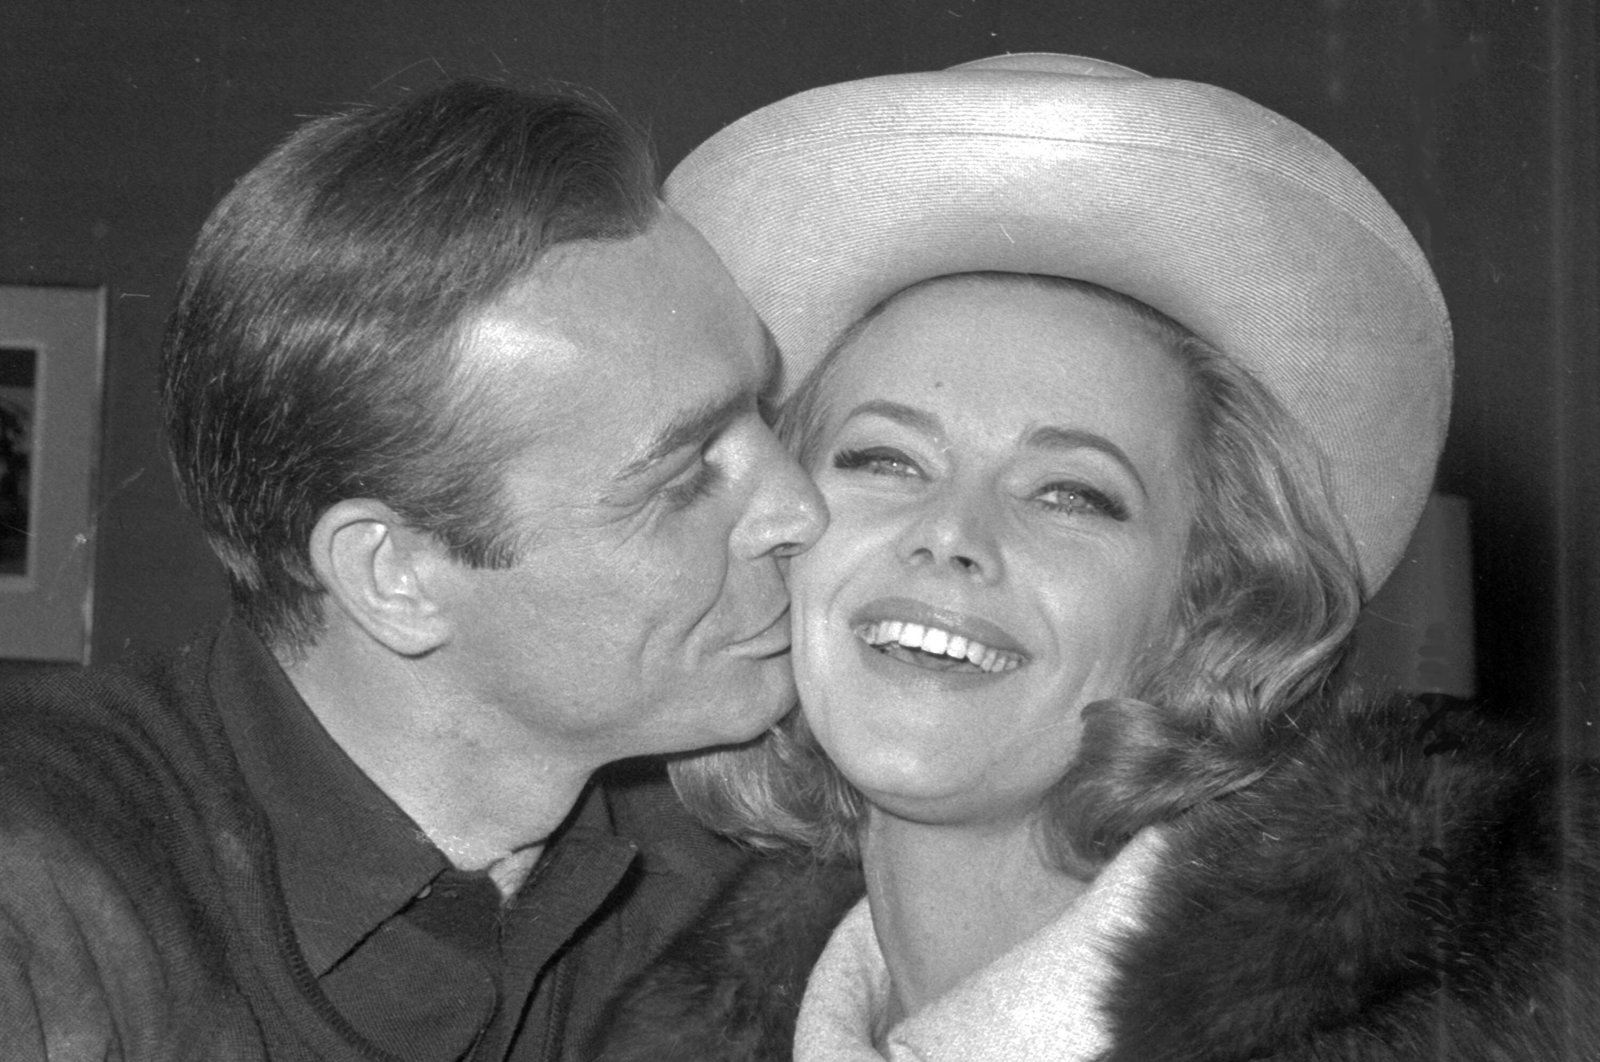 British actor Sean Connery kisses actress Honor Blackman during a party at Pinewood Film Studios, March 25, 1964, Iver Heath, England. (AP Photo)